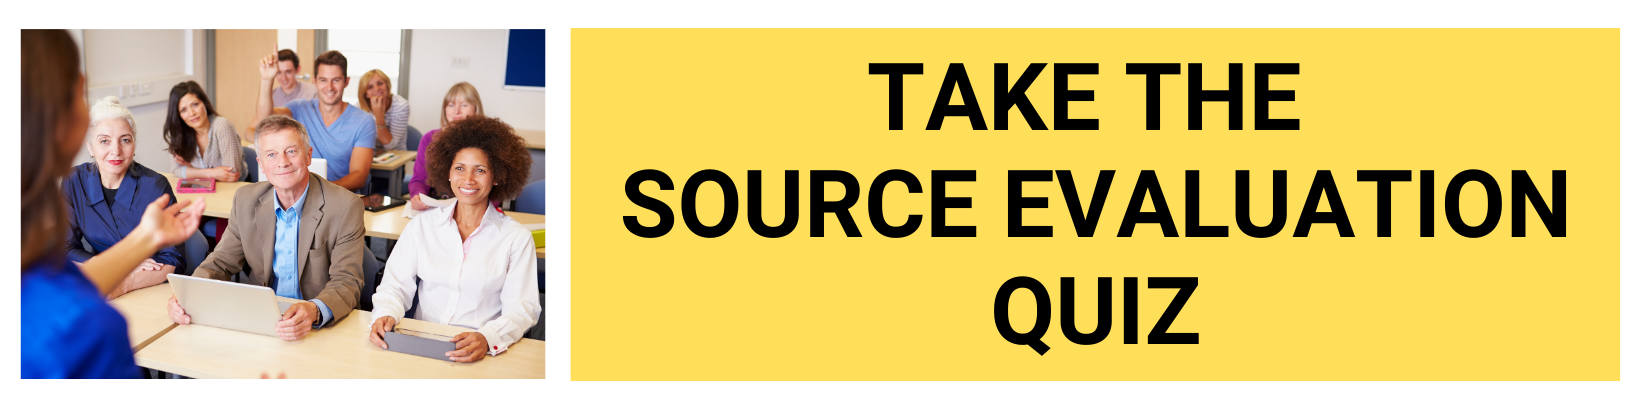 Take the Source Evaluation Quiz